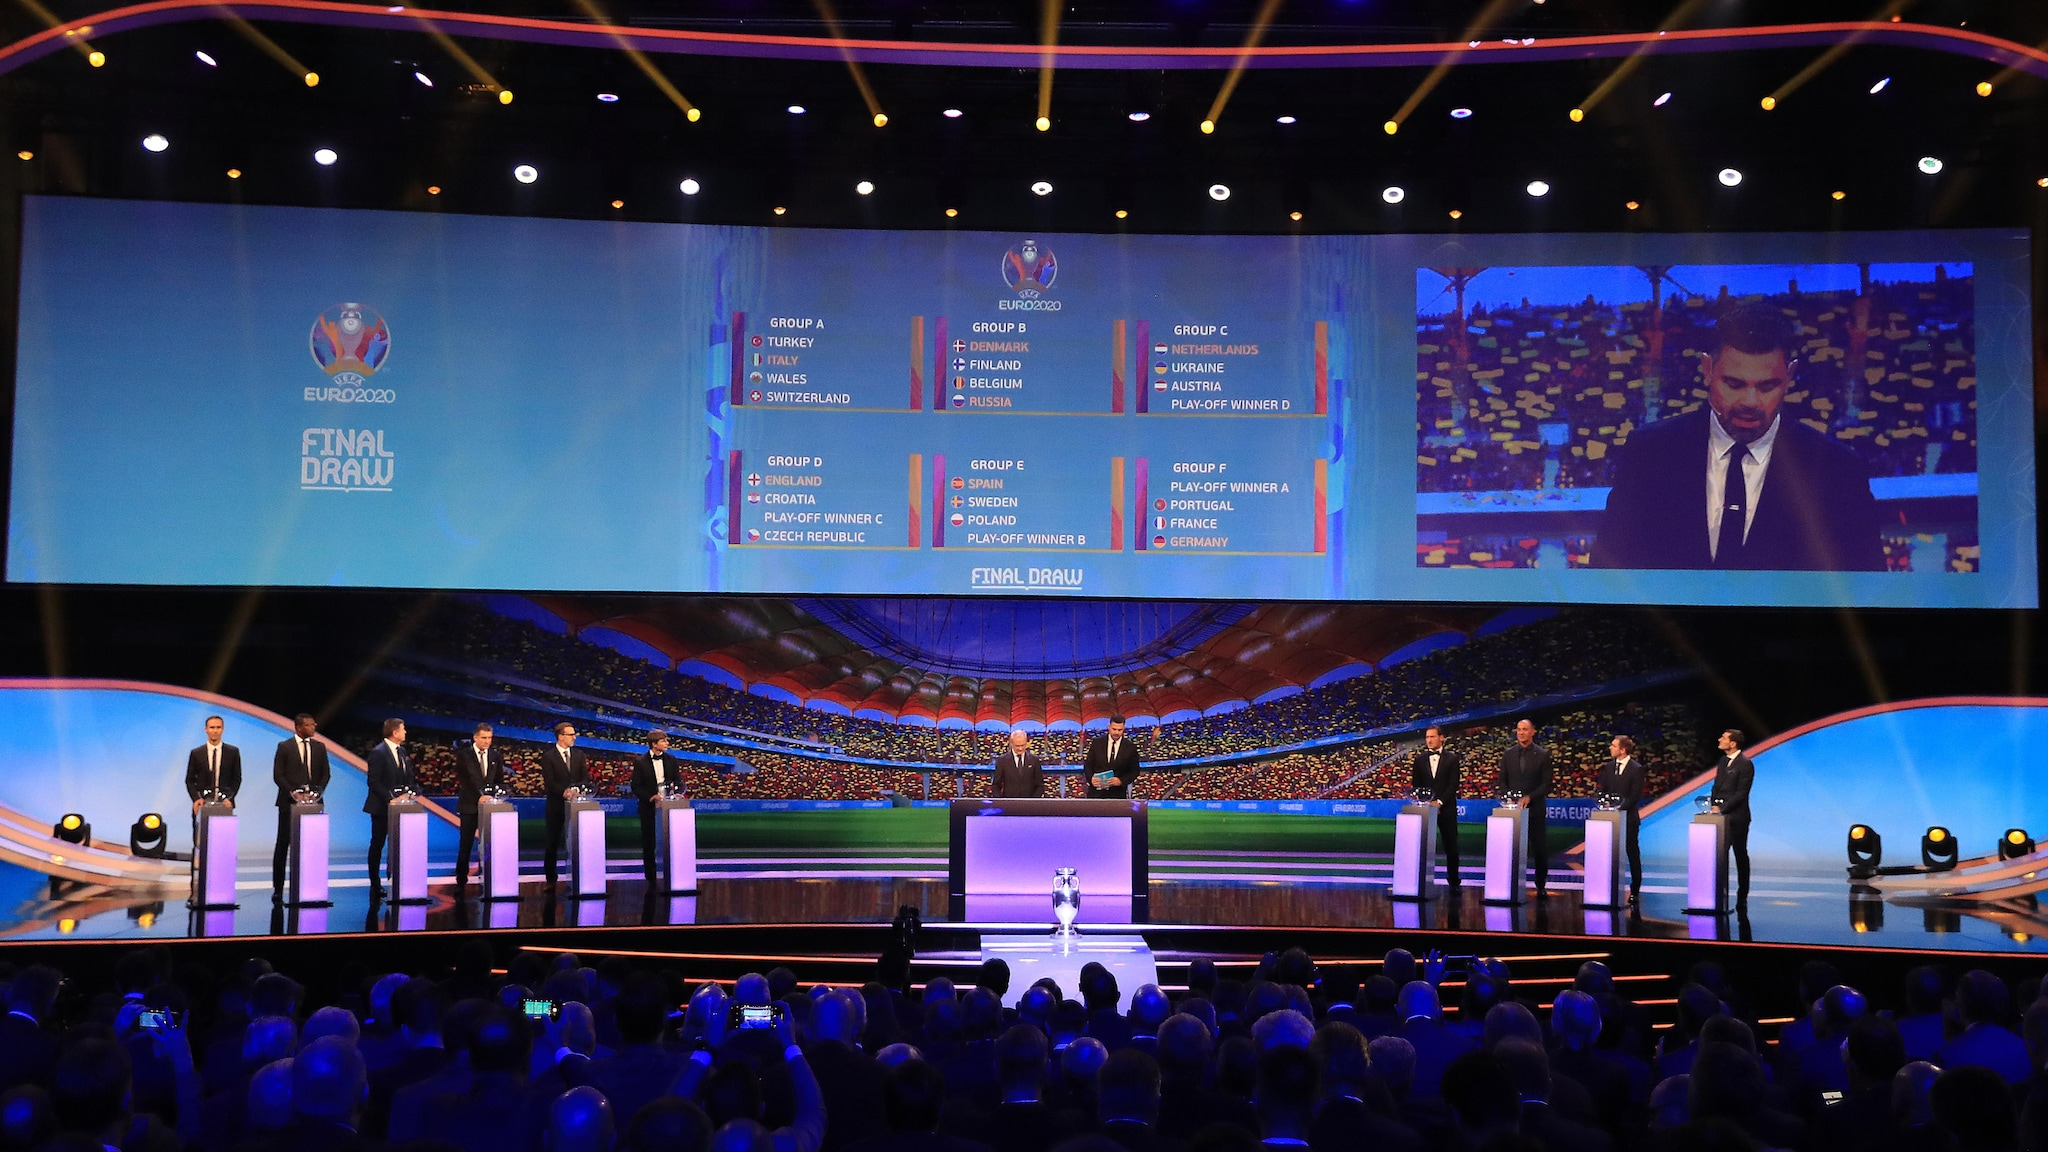 uefa_euro_2020_final_draw_ceremony.jpeg